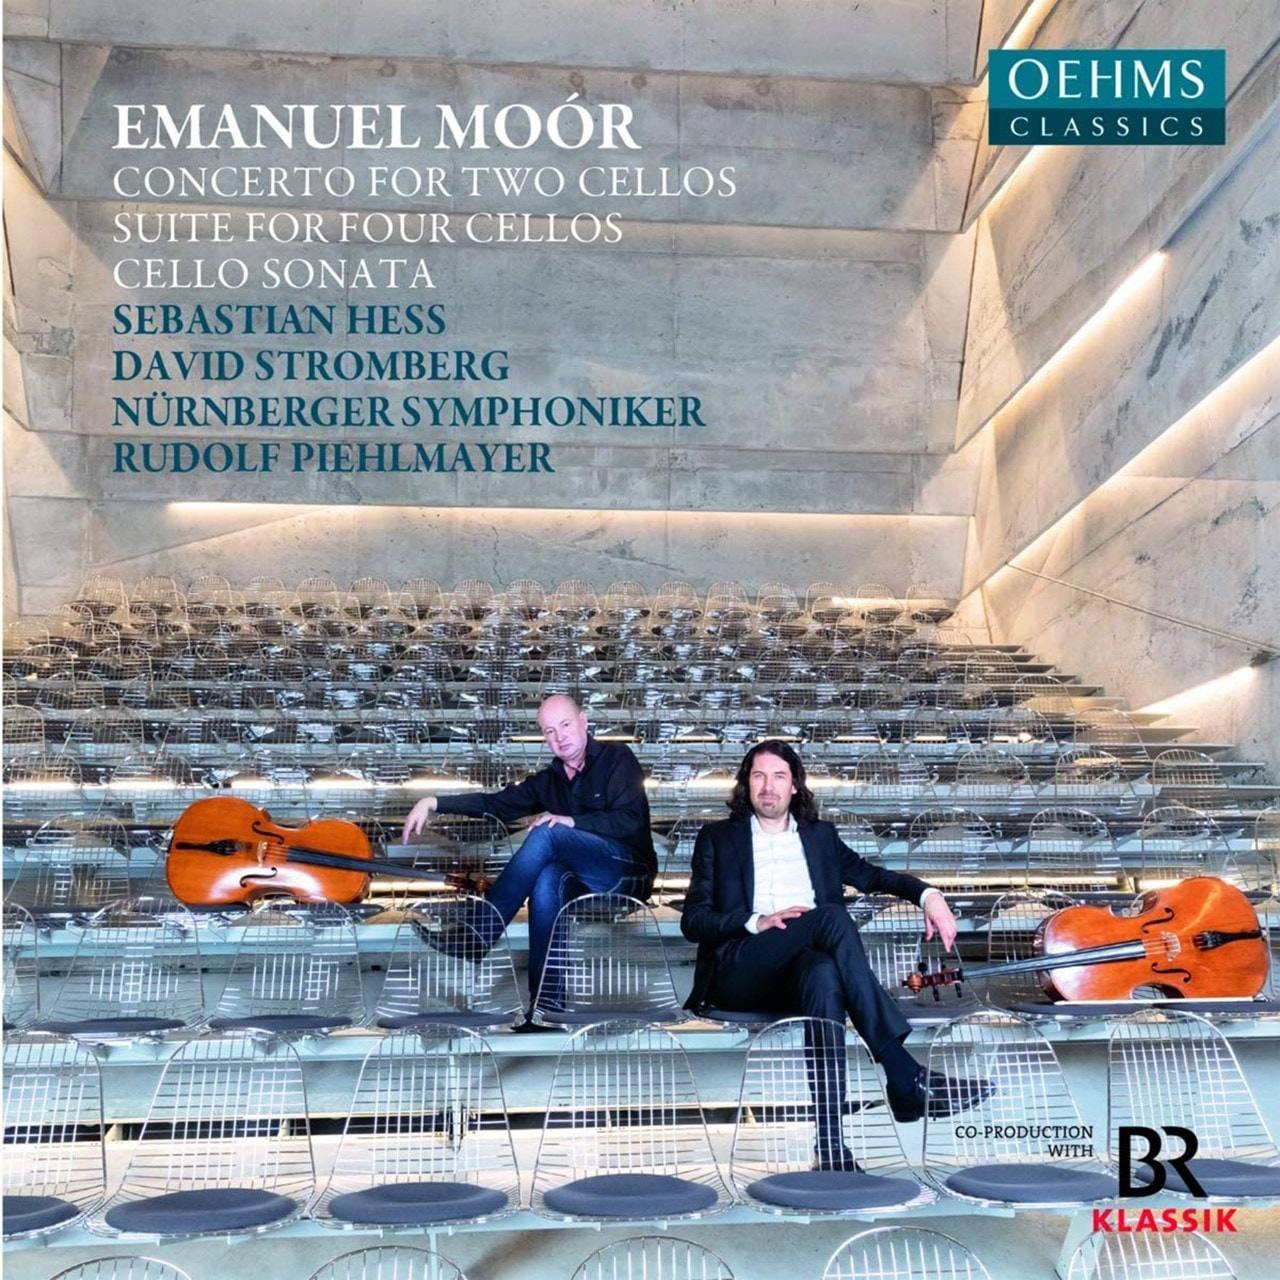 Emanuel Moor: Concerto for Two Cellos/Suite for Four Cellos/... - 1